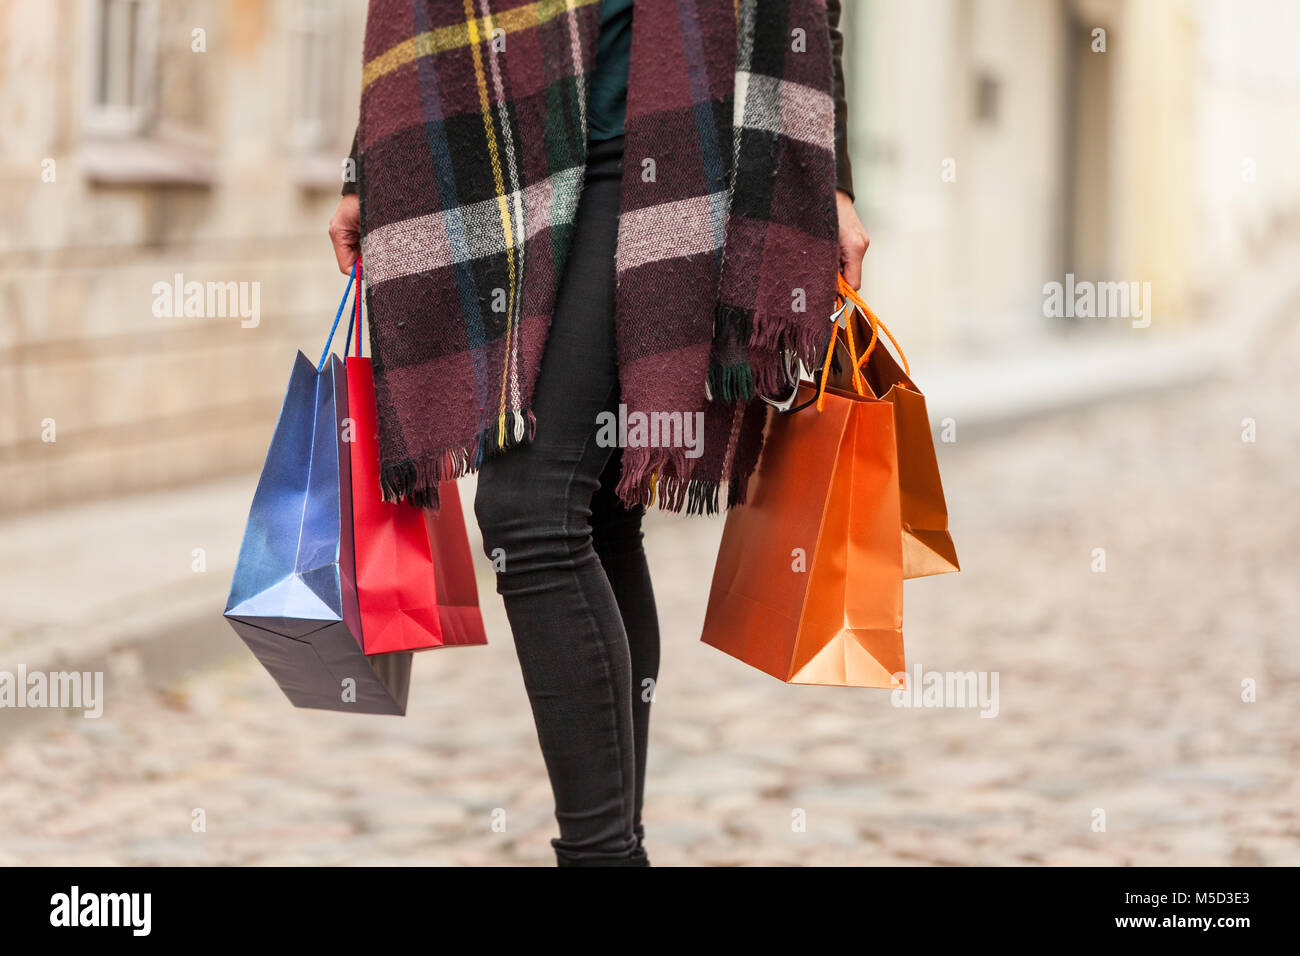 Woman holds bags in a cold day - Stock Image